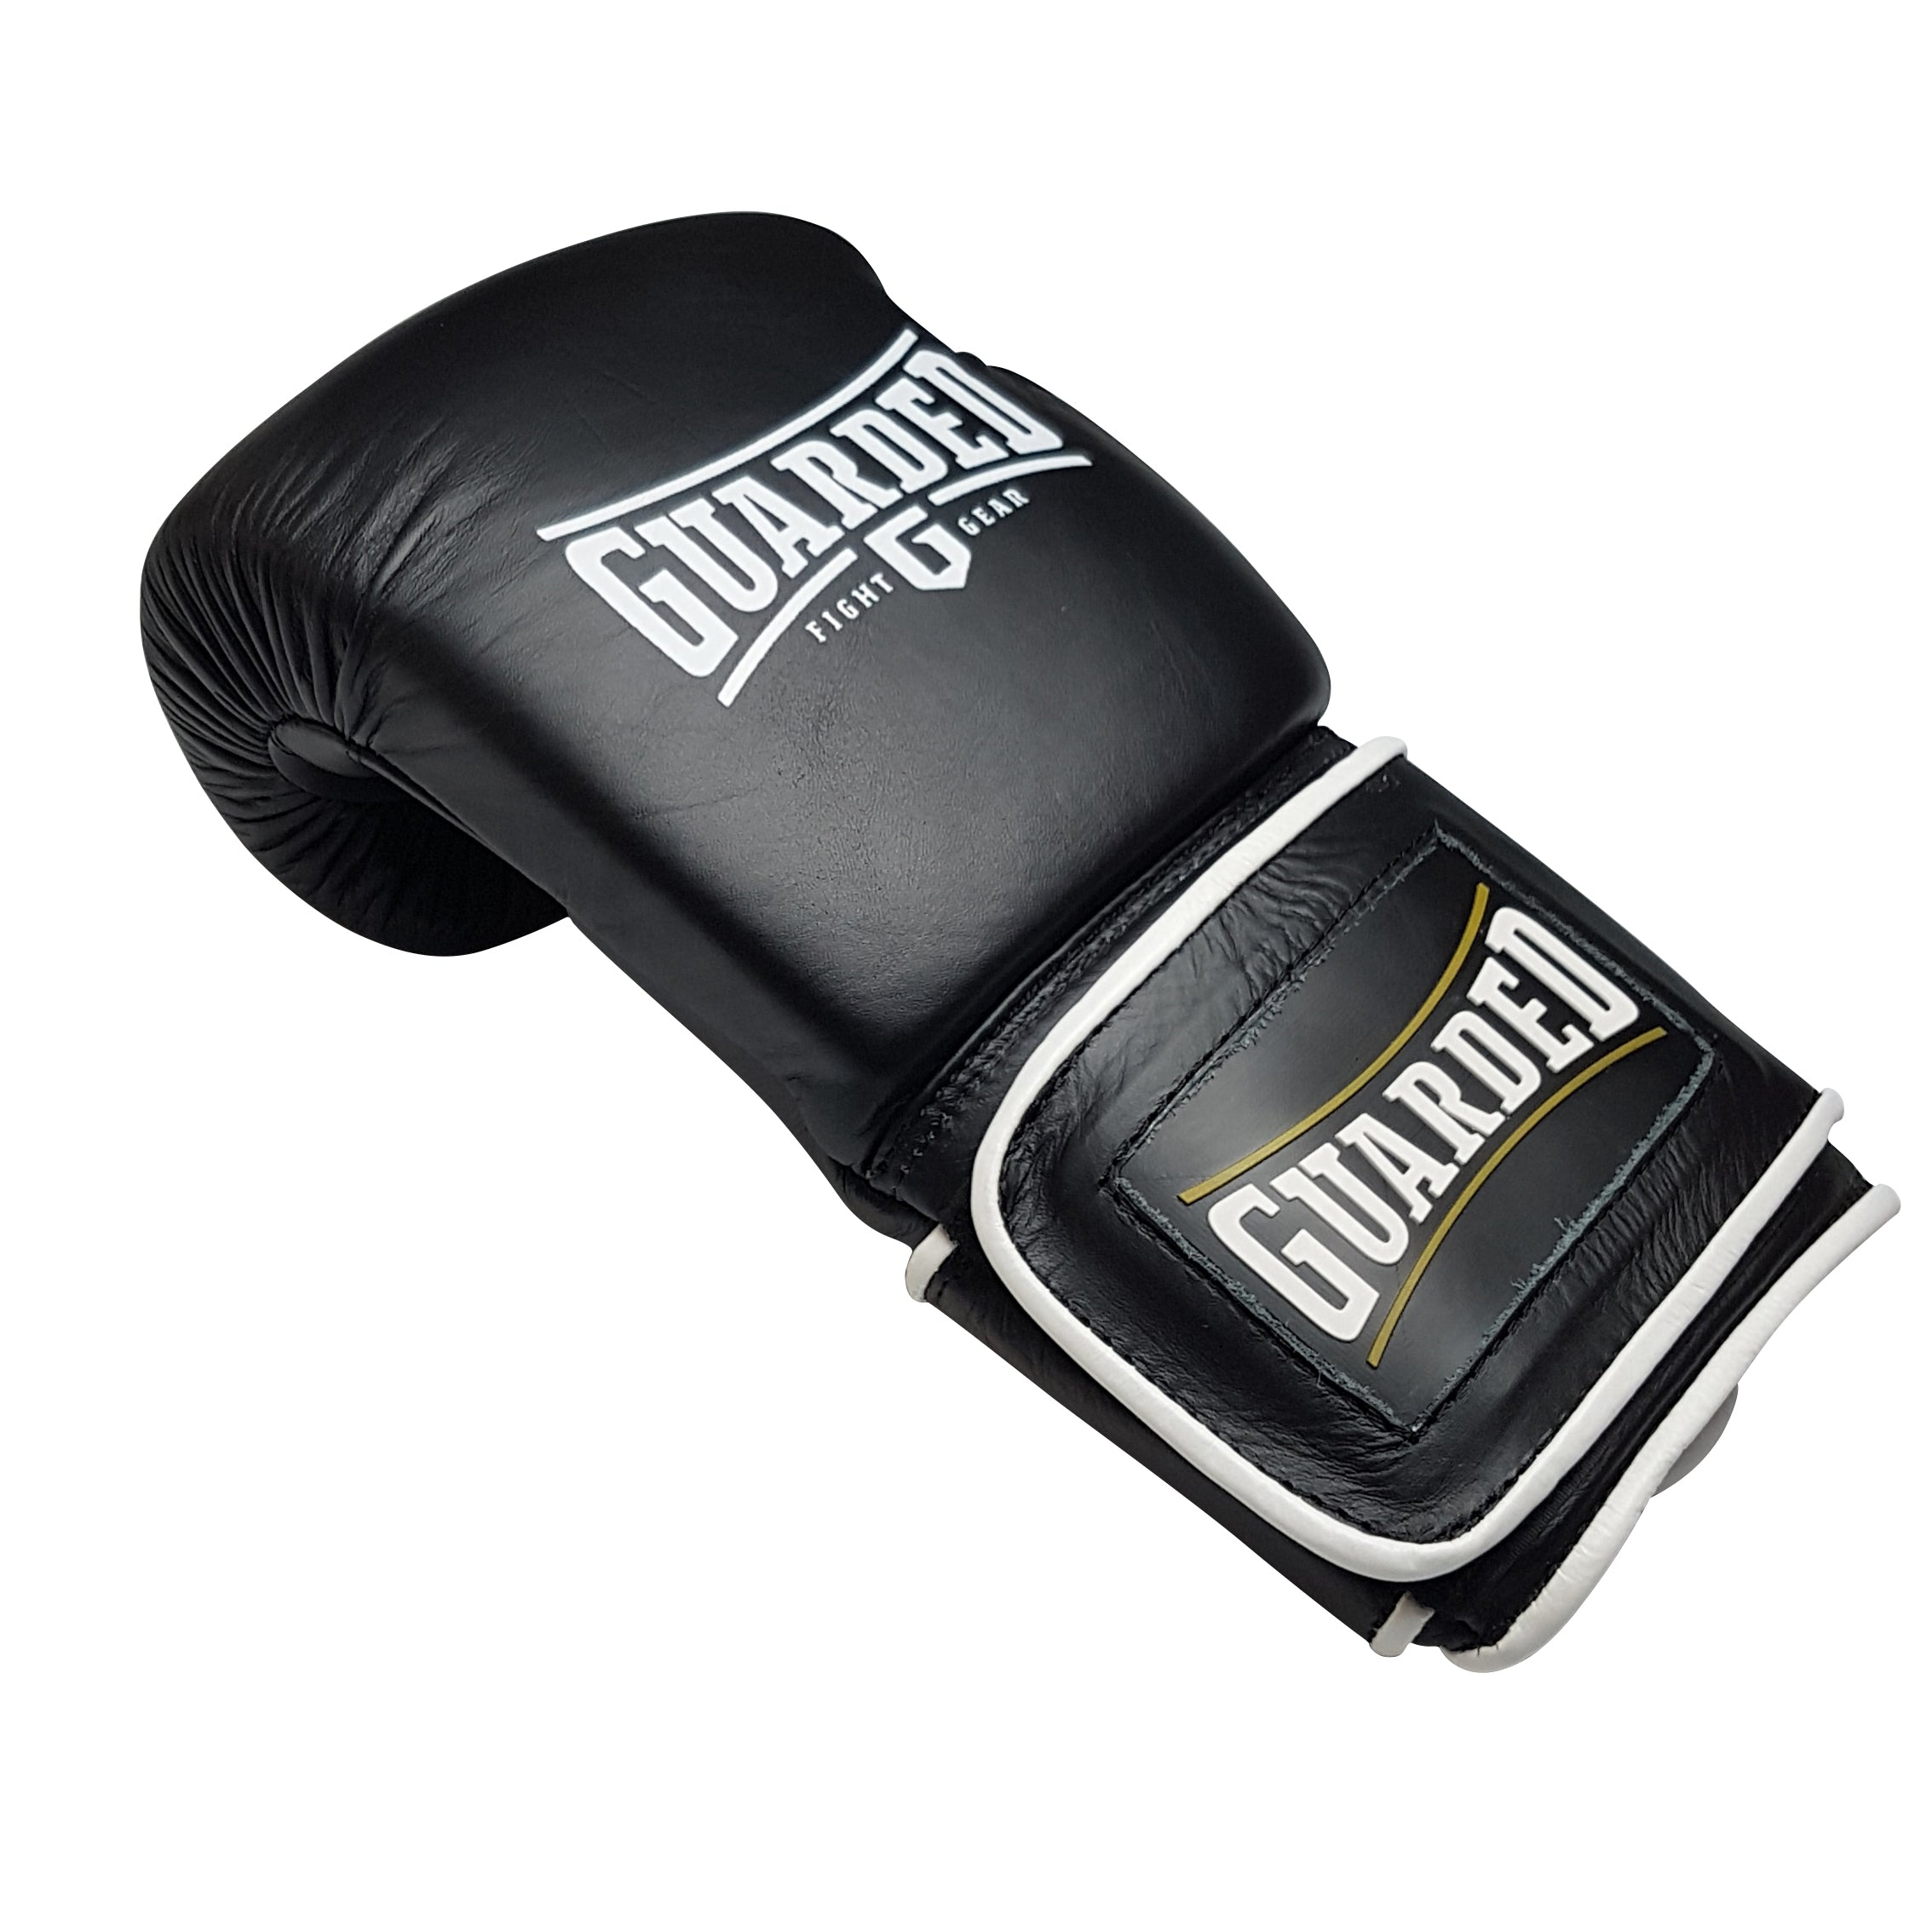 Sparring Gloves, Black, 16oz, SPAR-10 by Guarded Fight Gear